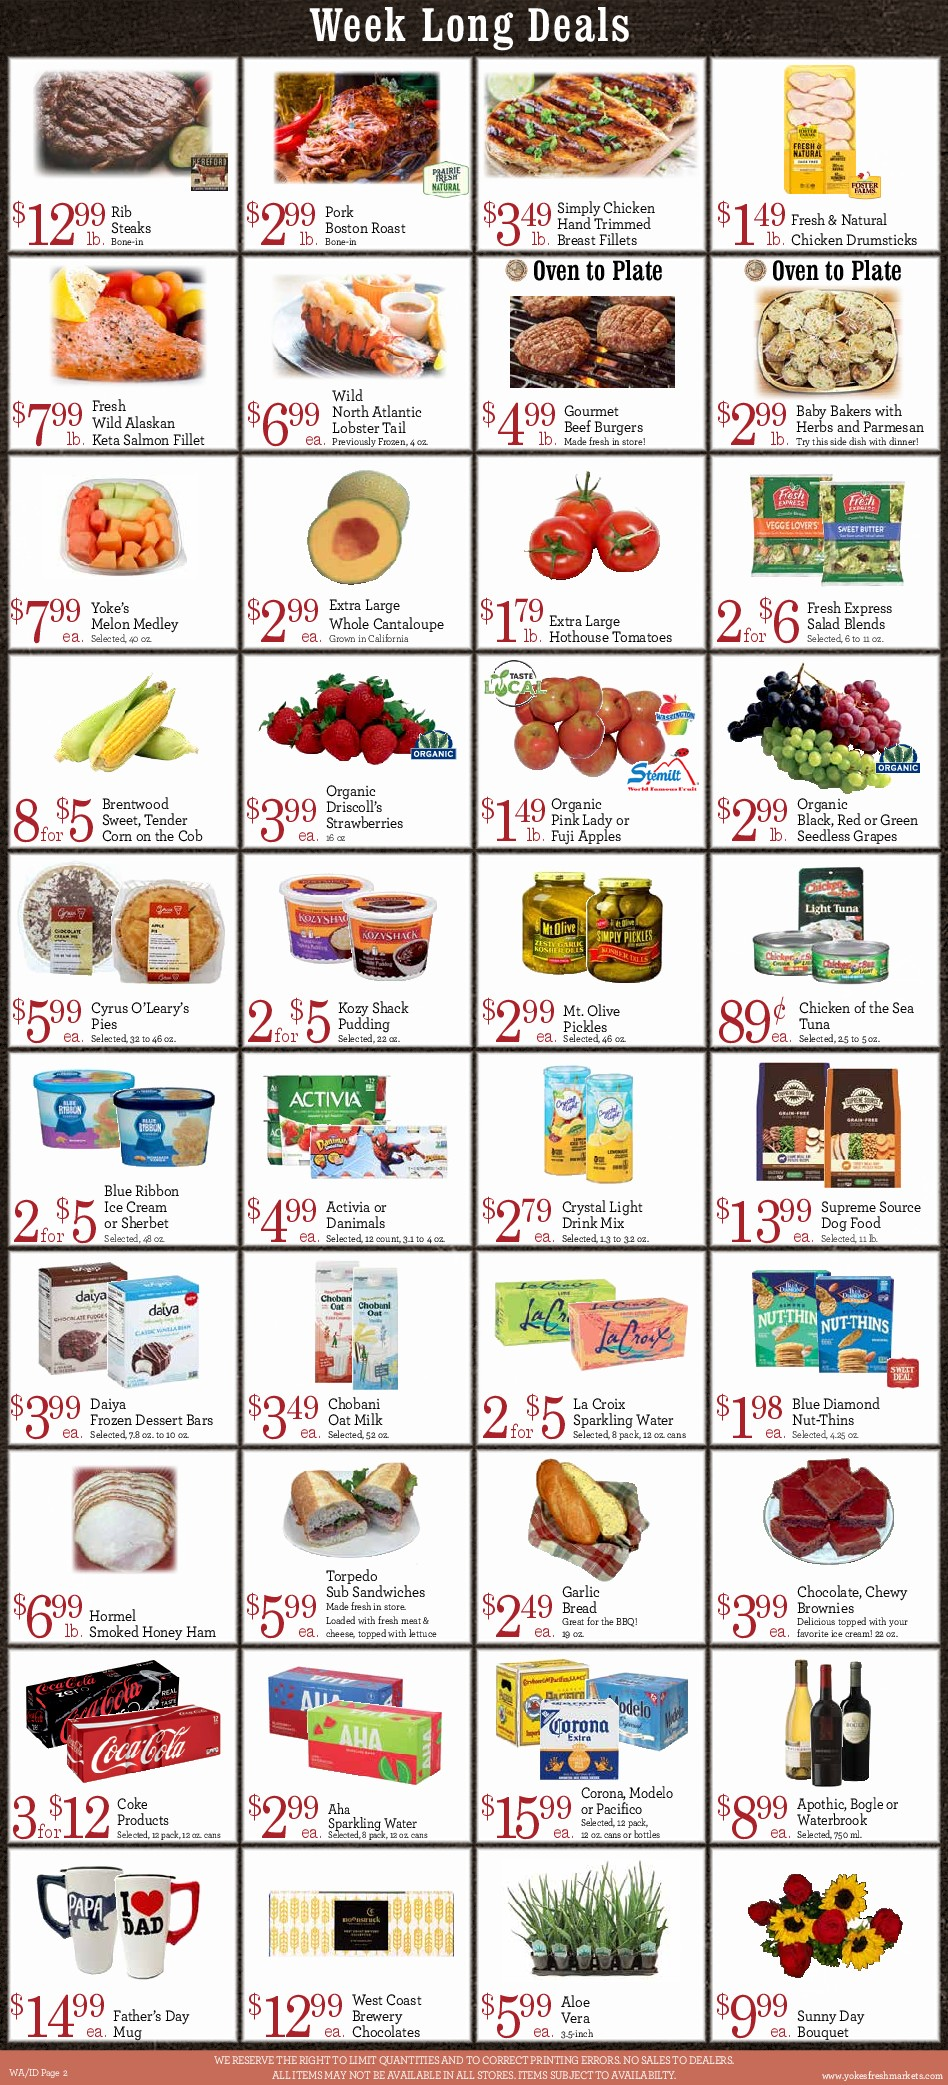 Page 2 of 06.16.21 Weekly Ad